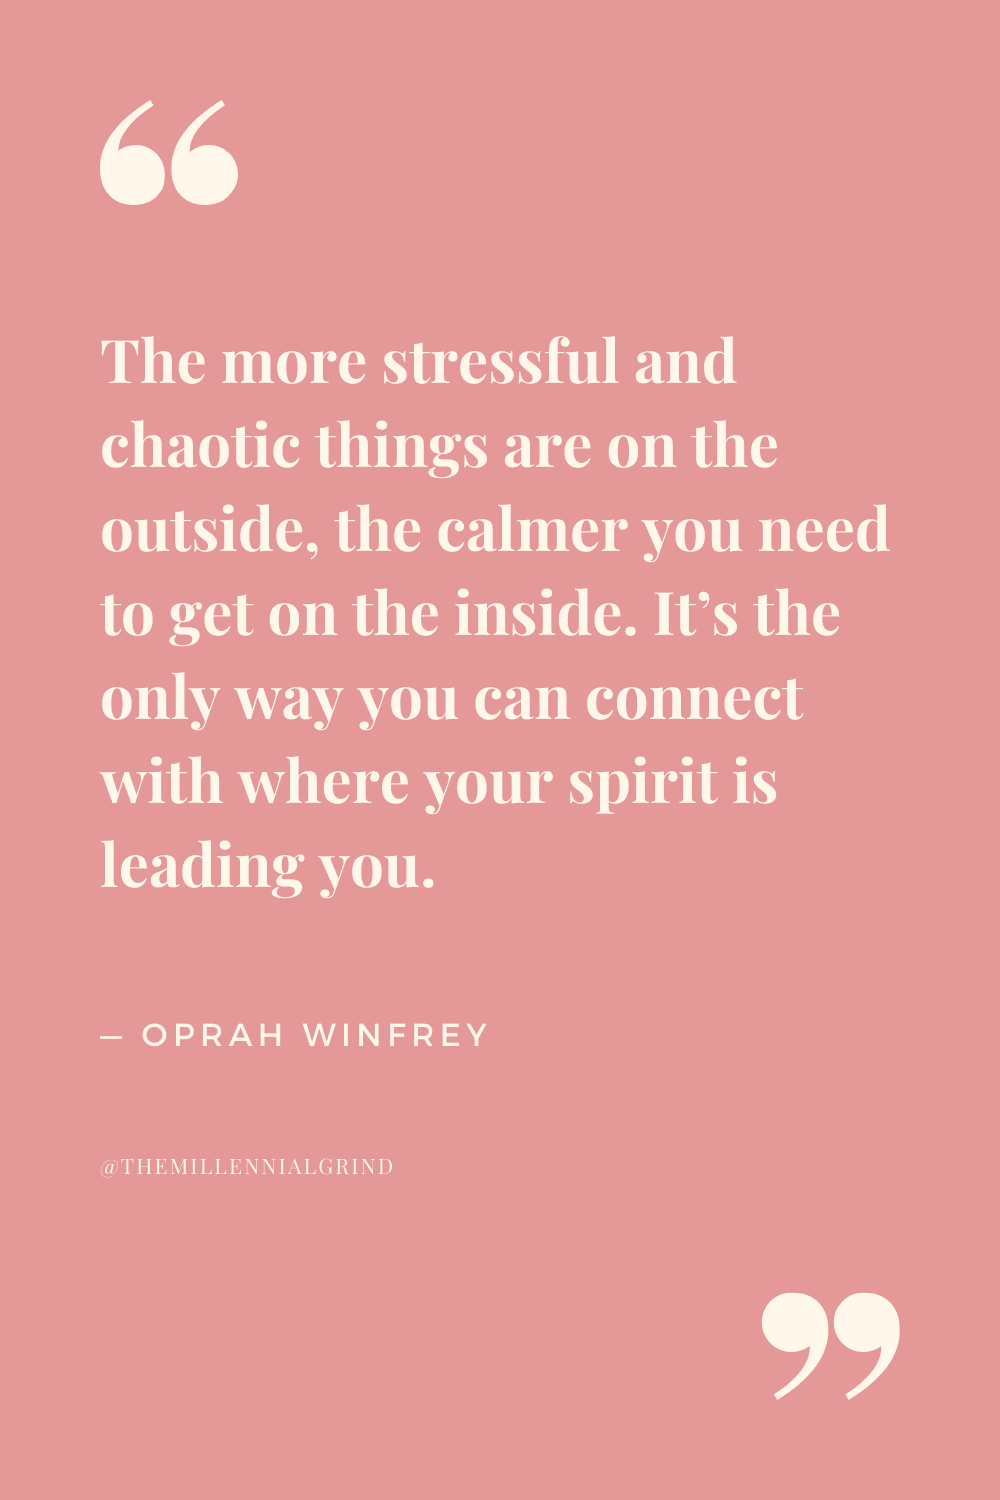 Quotes from What I Know for Sure by Oprah Winfrey